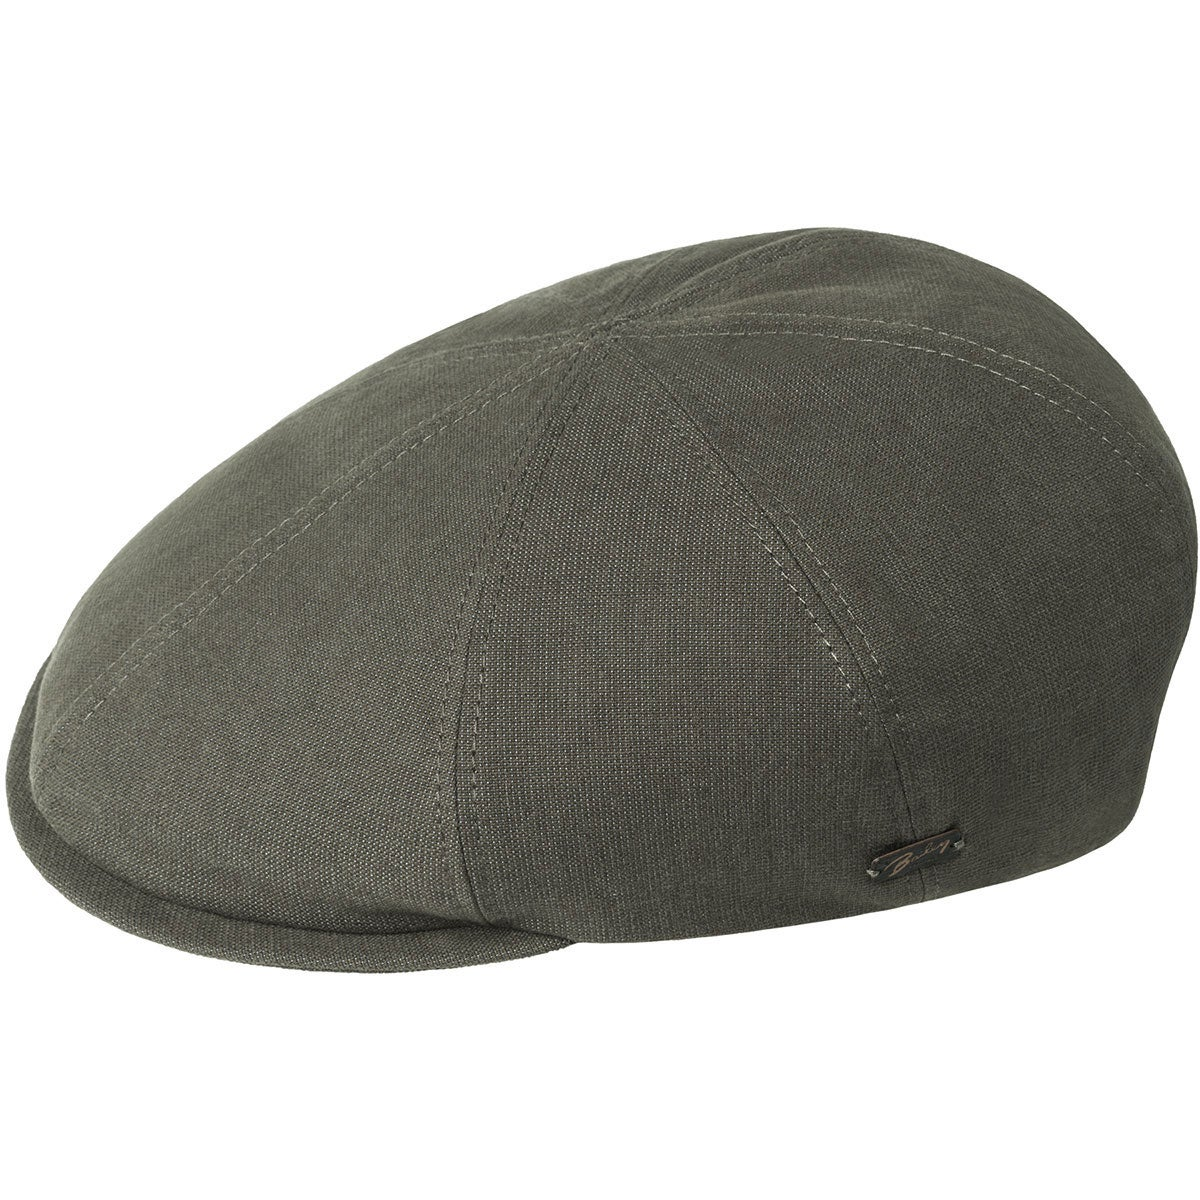 Bailey of Hollywood Booth Cap in Olive